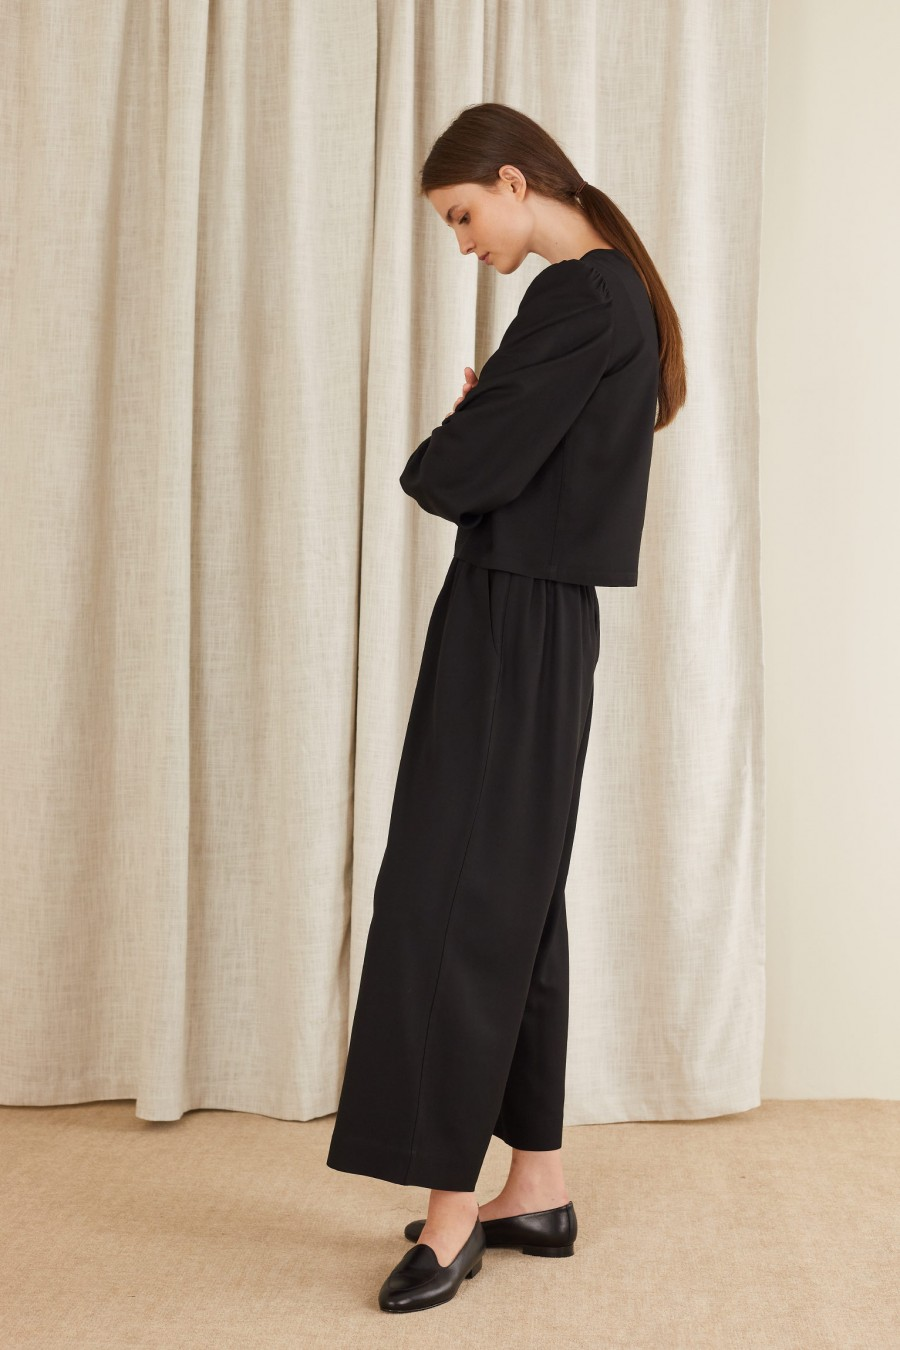 elegant look with top and palazzo pants